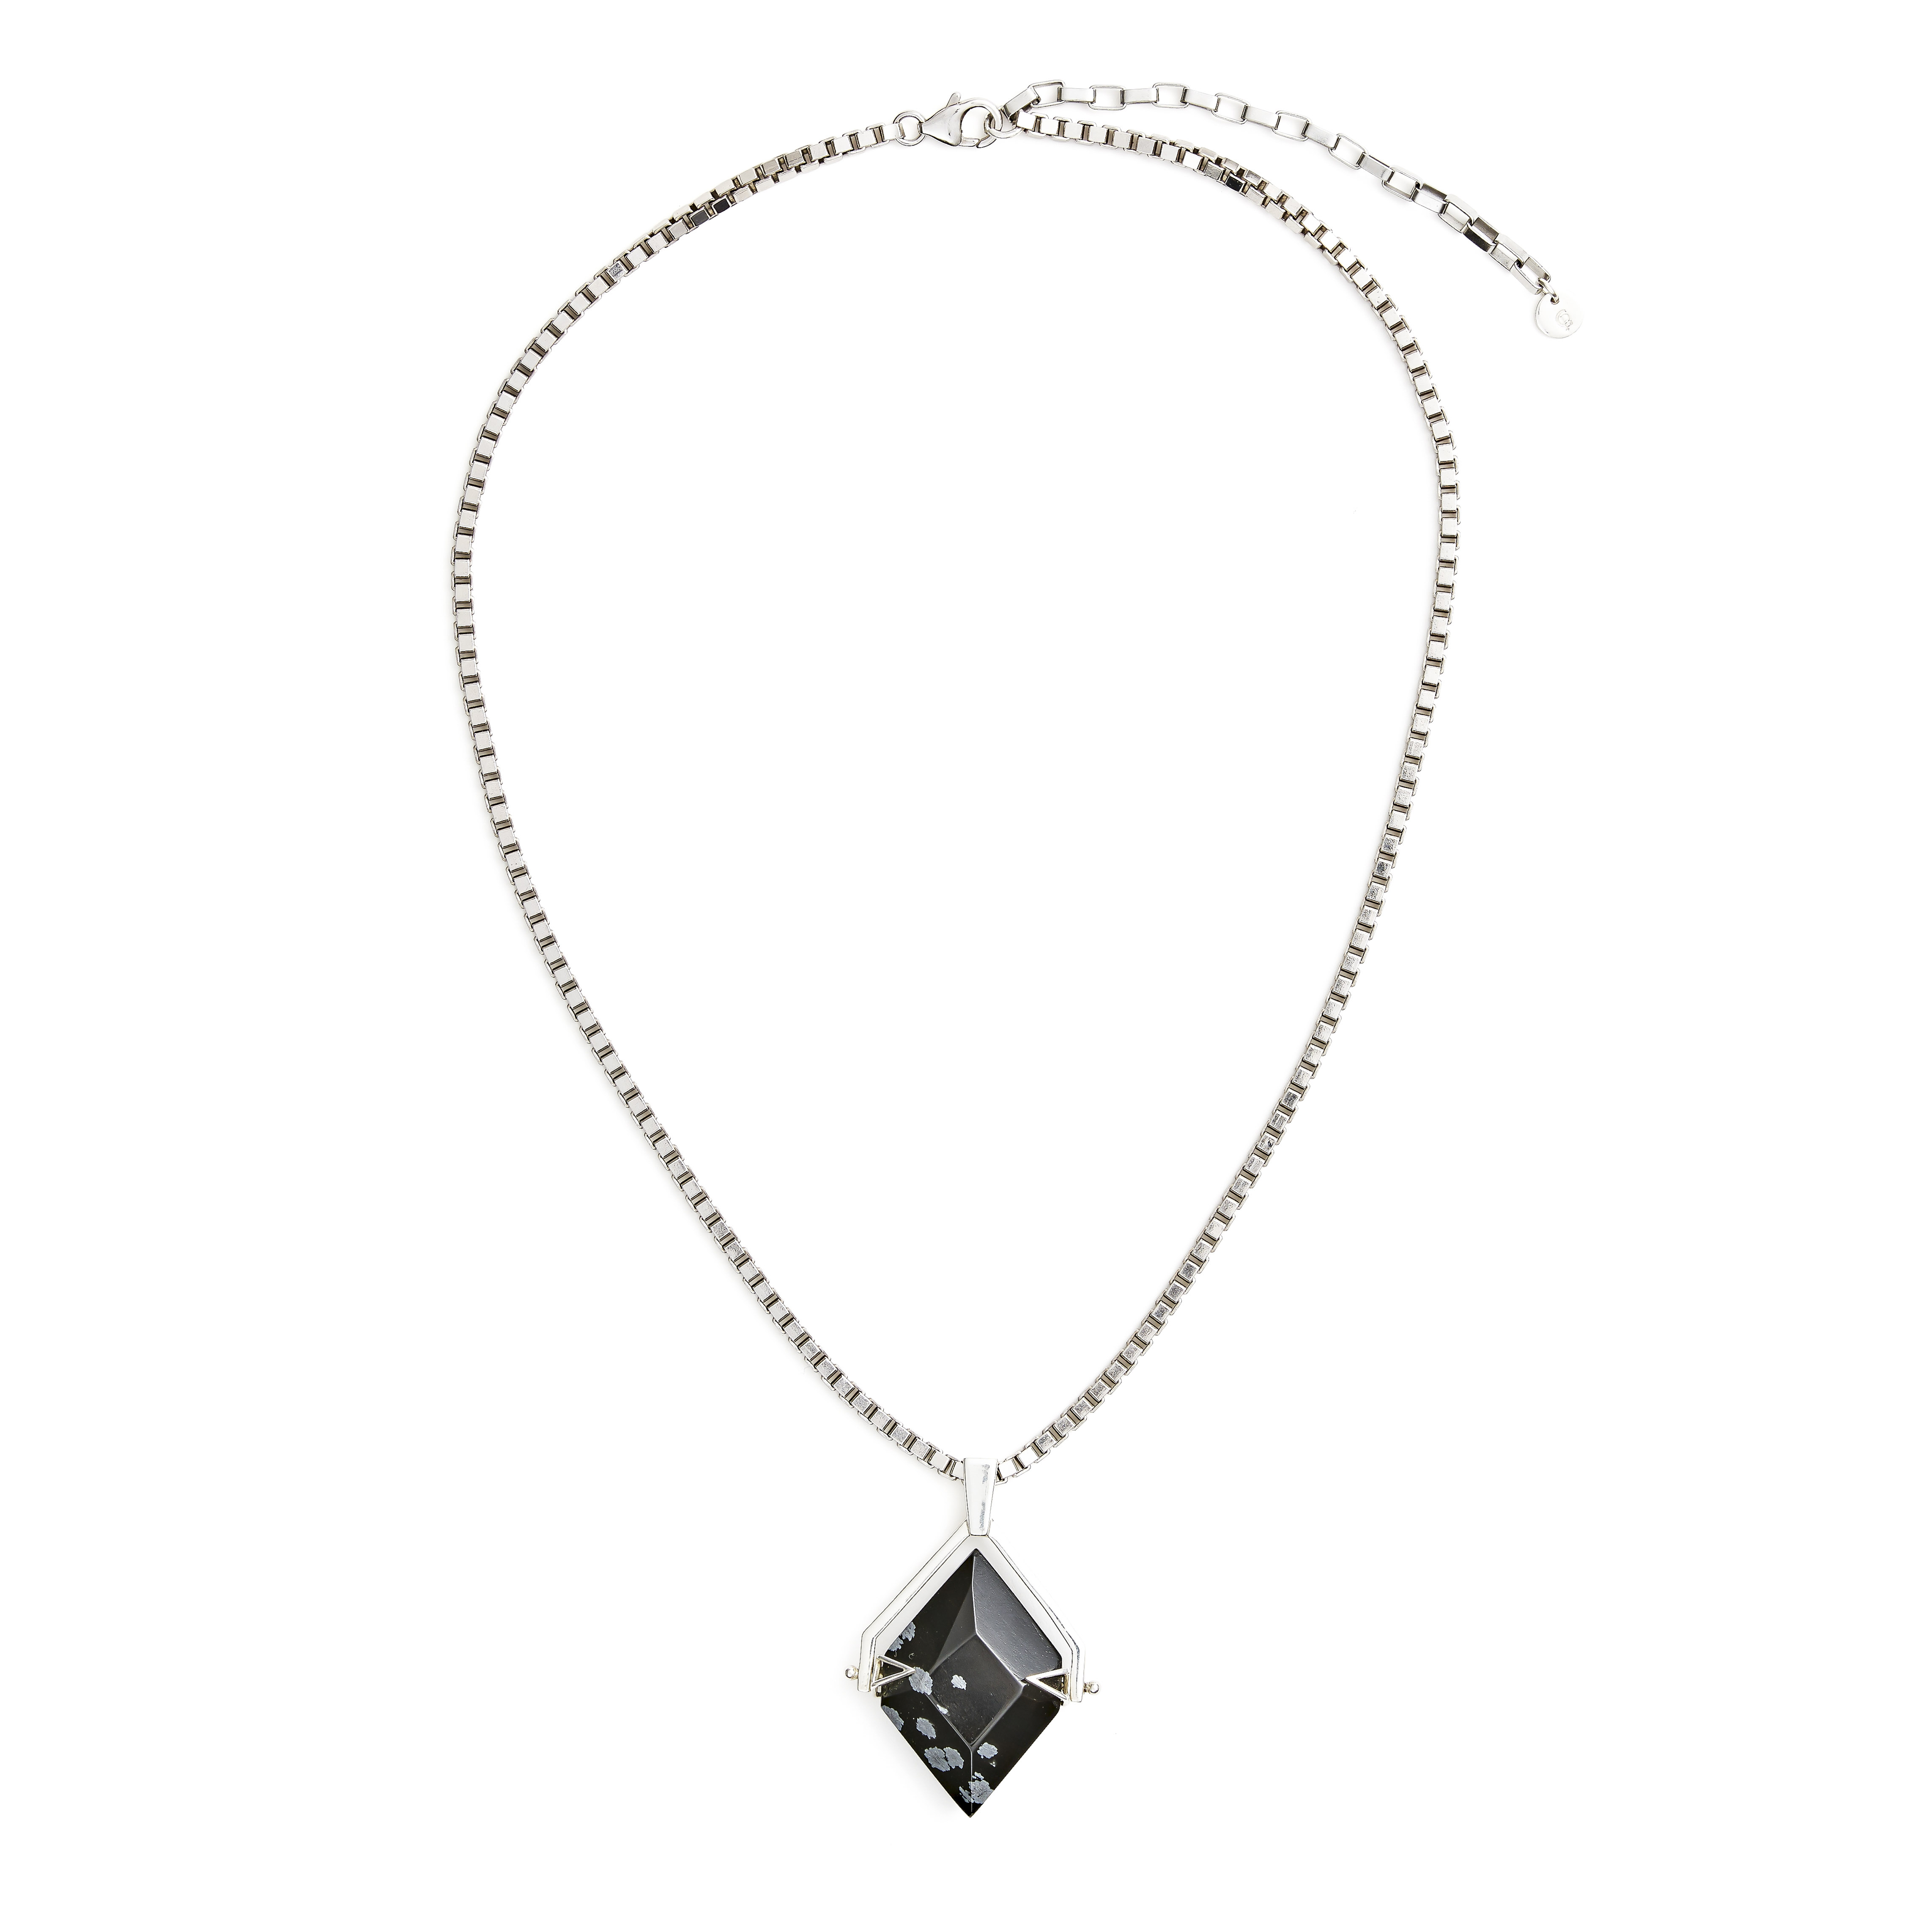 obsidian-silver-necklace-1